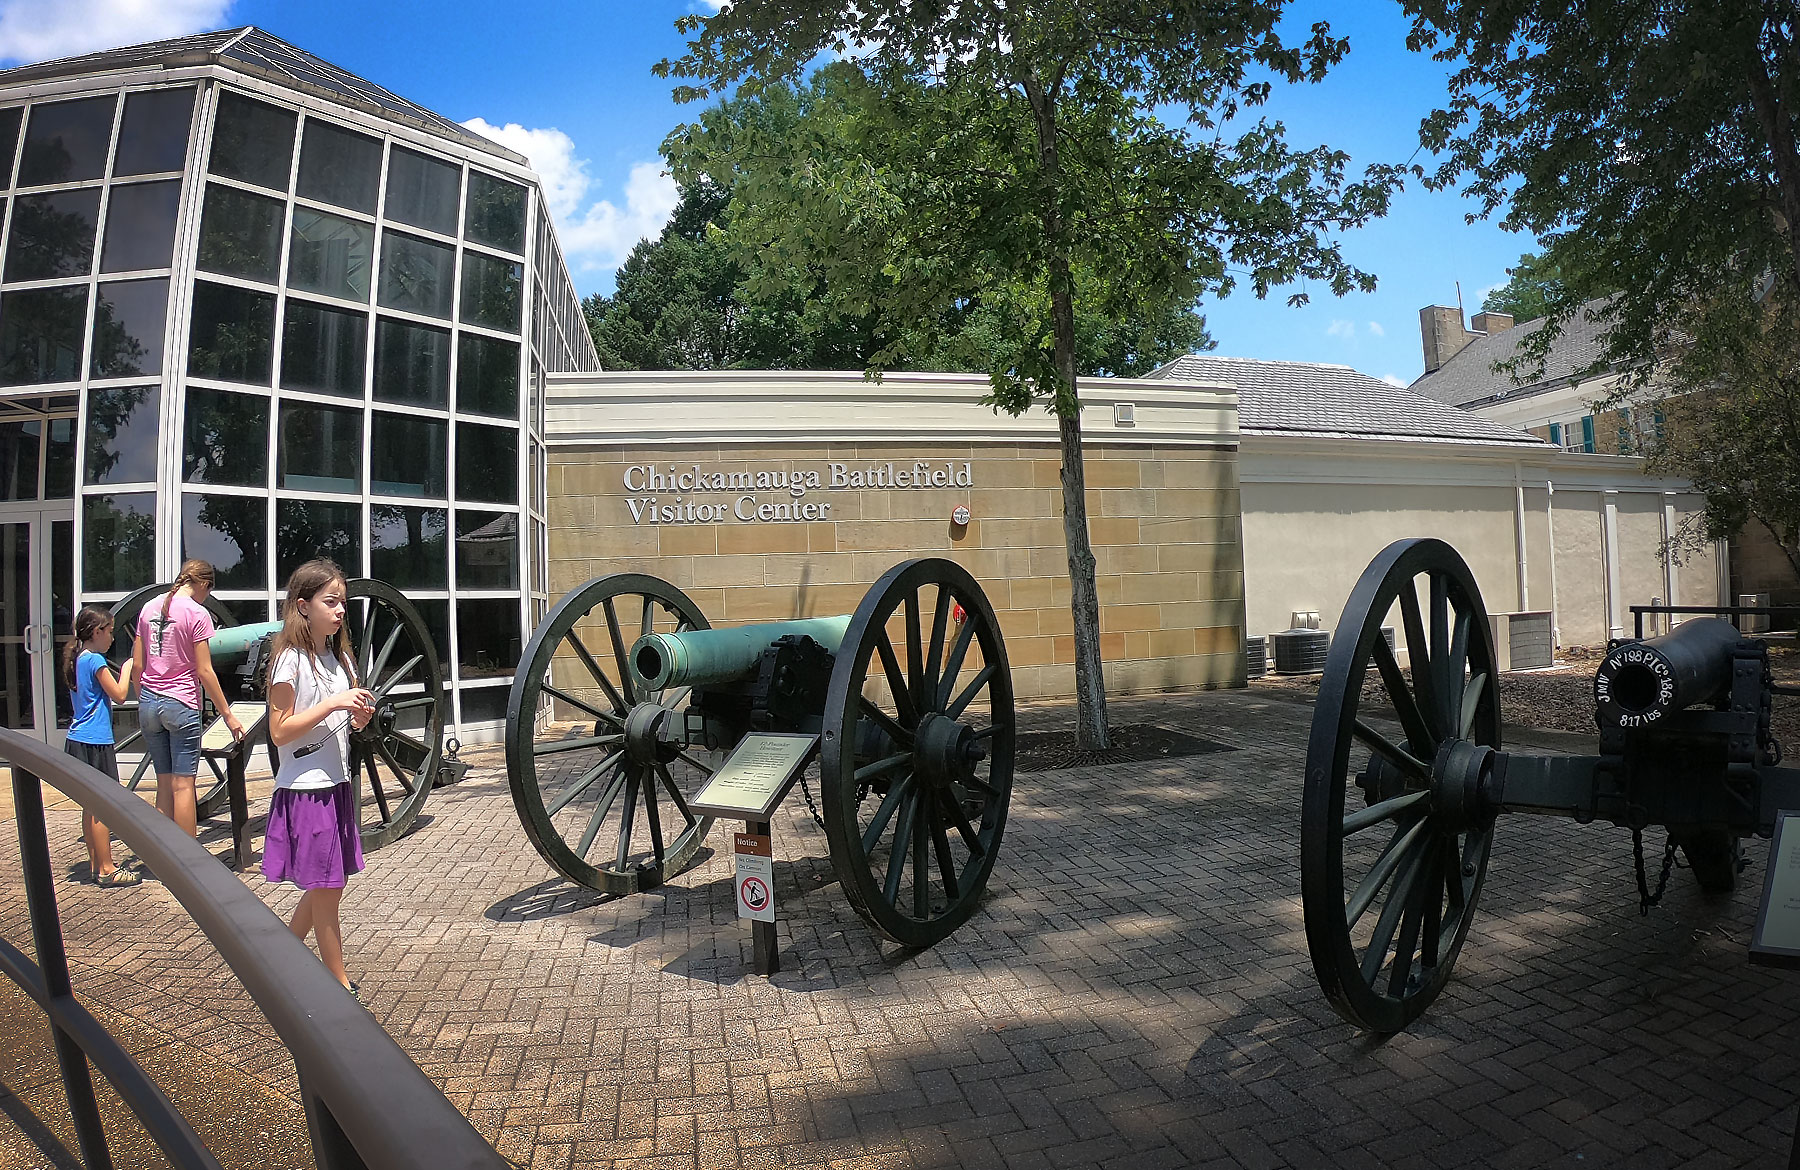 Three girls near cannons outside the Chickamauga and Chattanooga National Military Park, Georgia Visitor Center, Georgia